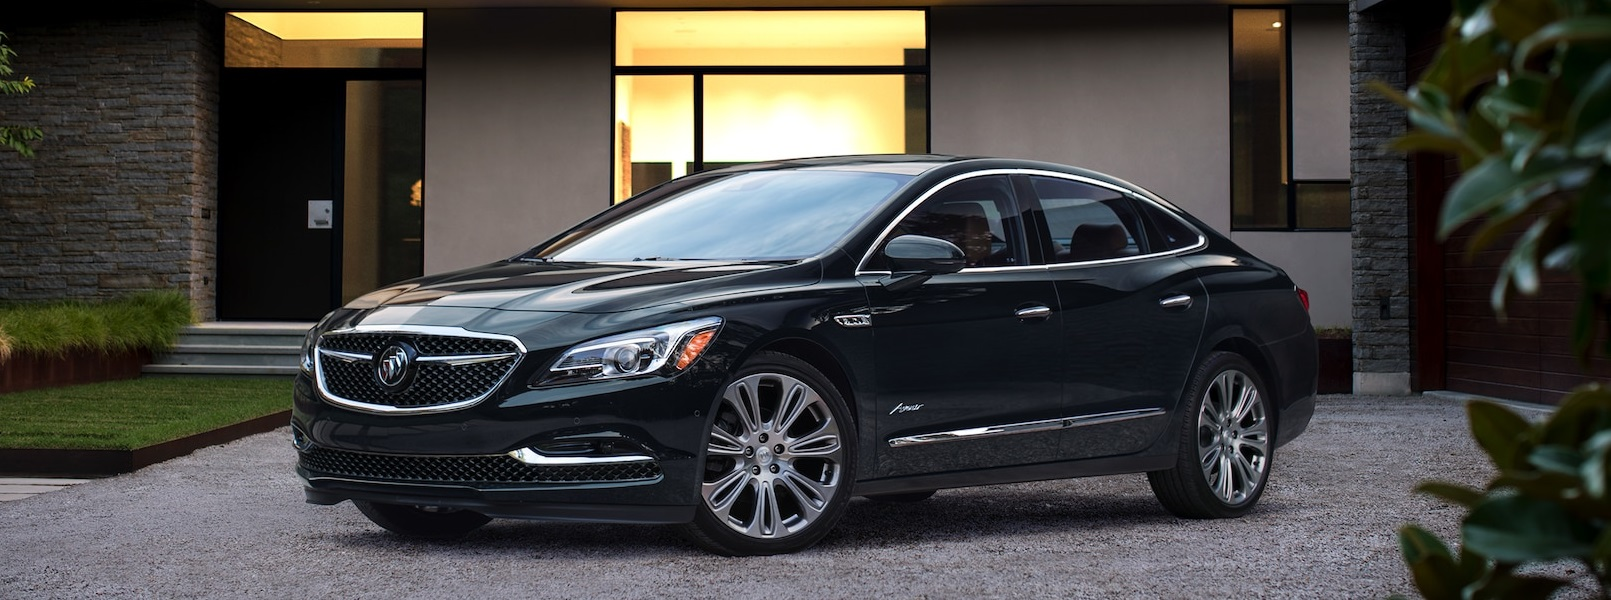 2019 Buick LaCrosse Avenir For Sale In Chandler OK